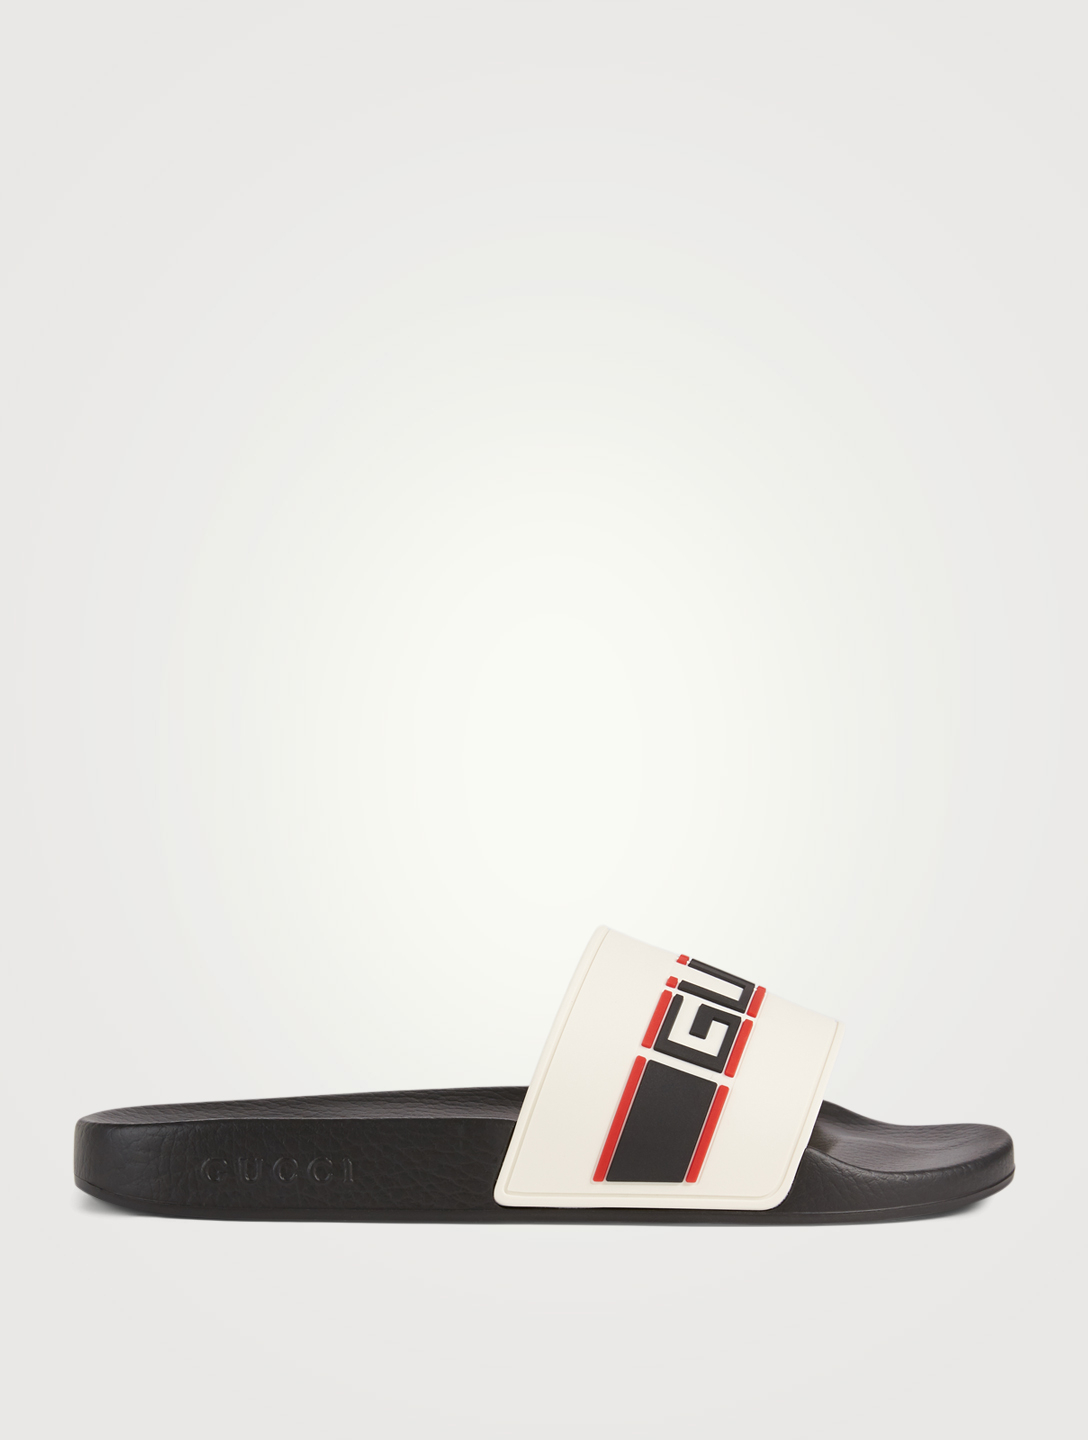 GUCCI Stripe Rubber Slide Sandals Men's White